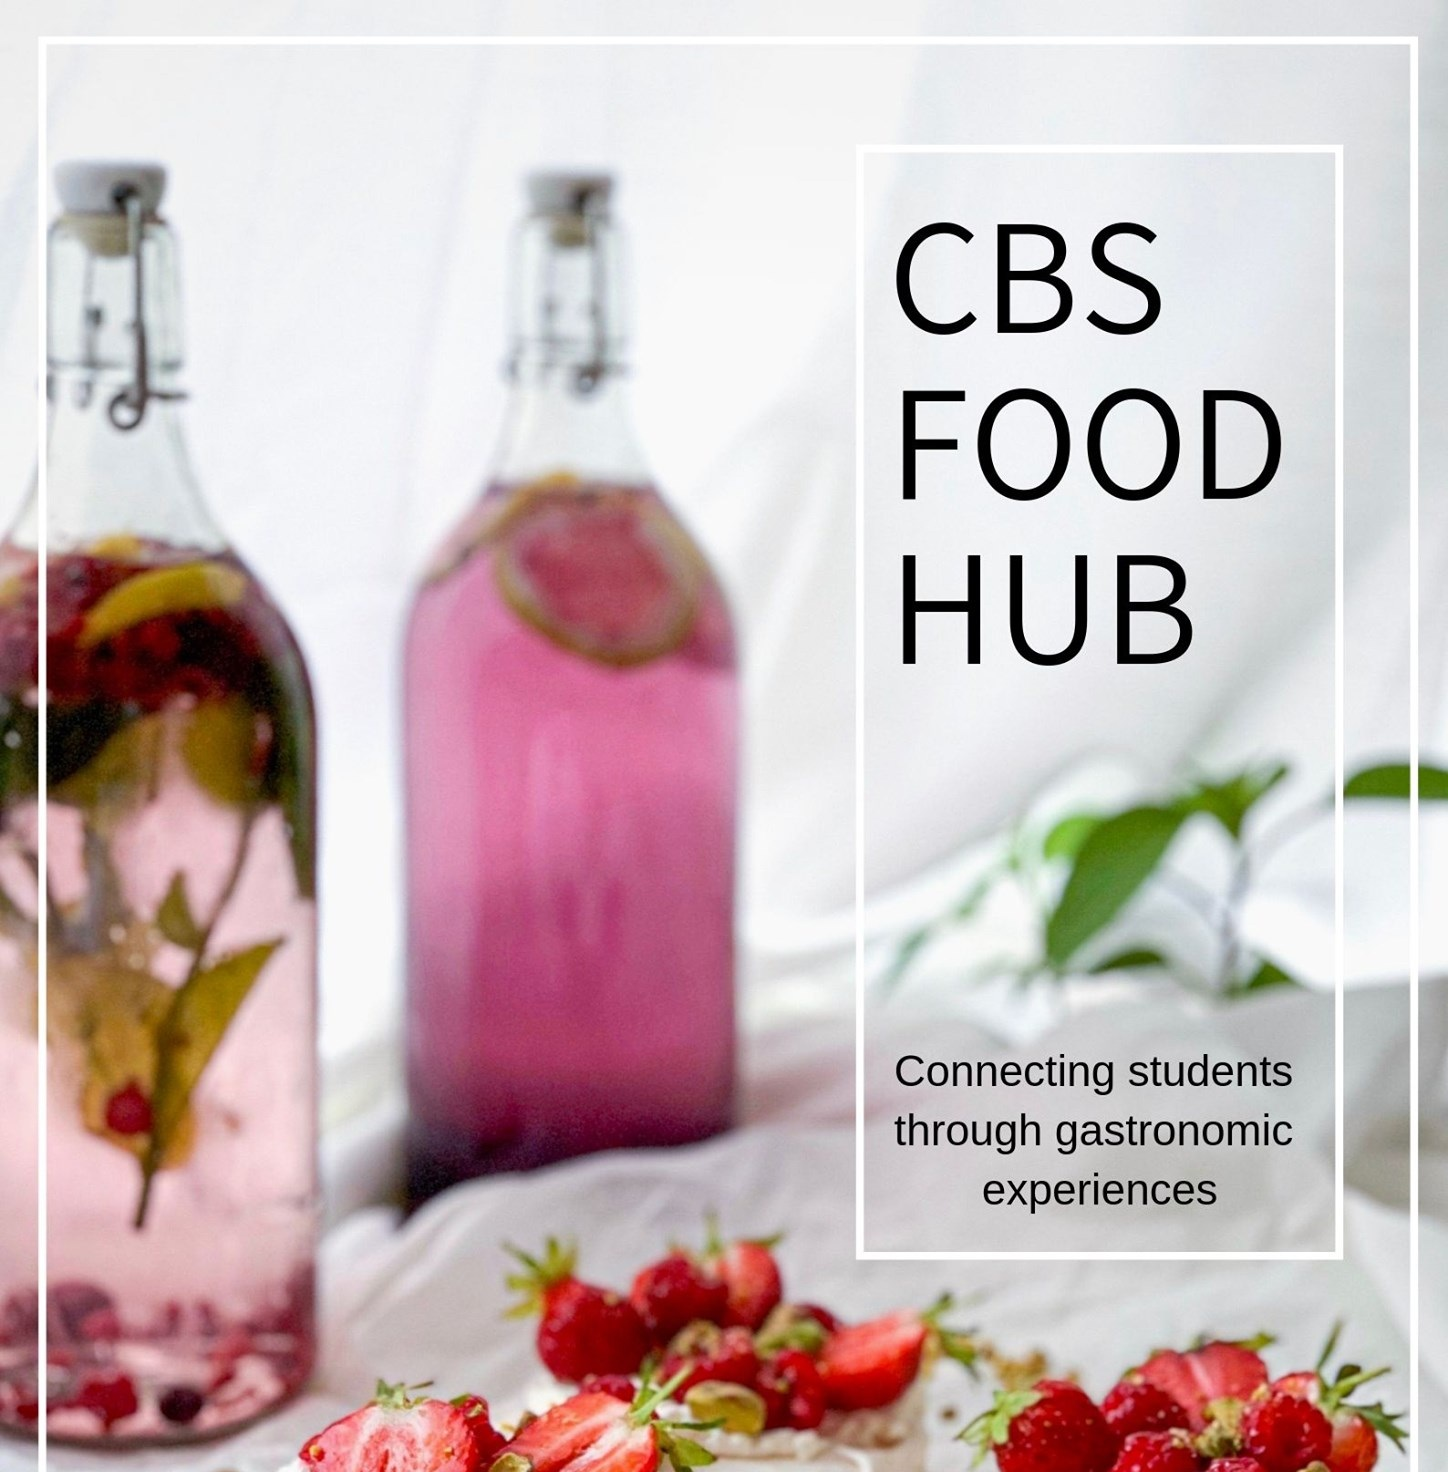 Get in touch - Email: cbsfoodhub@gmail.comFacebookStudent Citizenship Guidelines